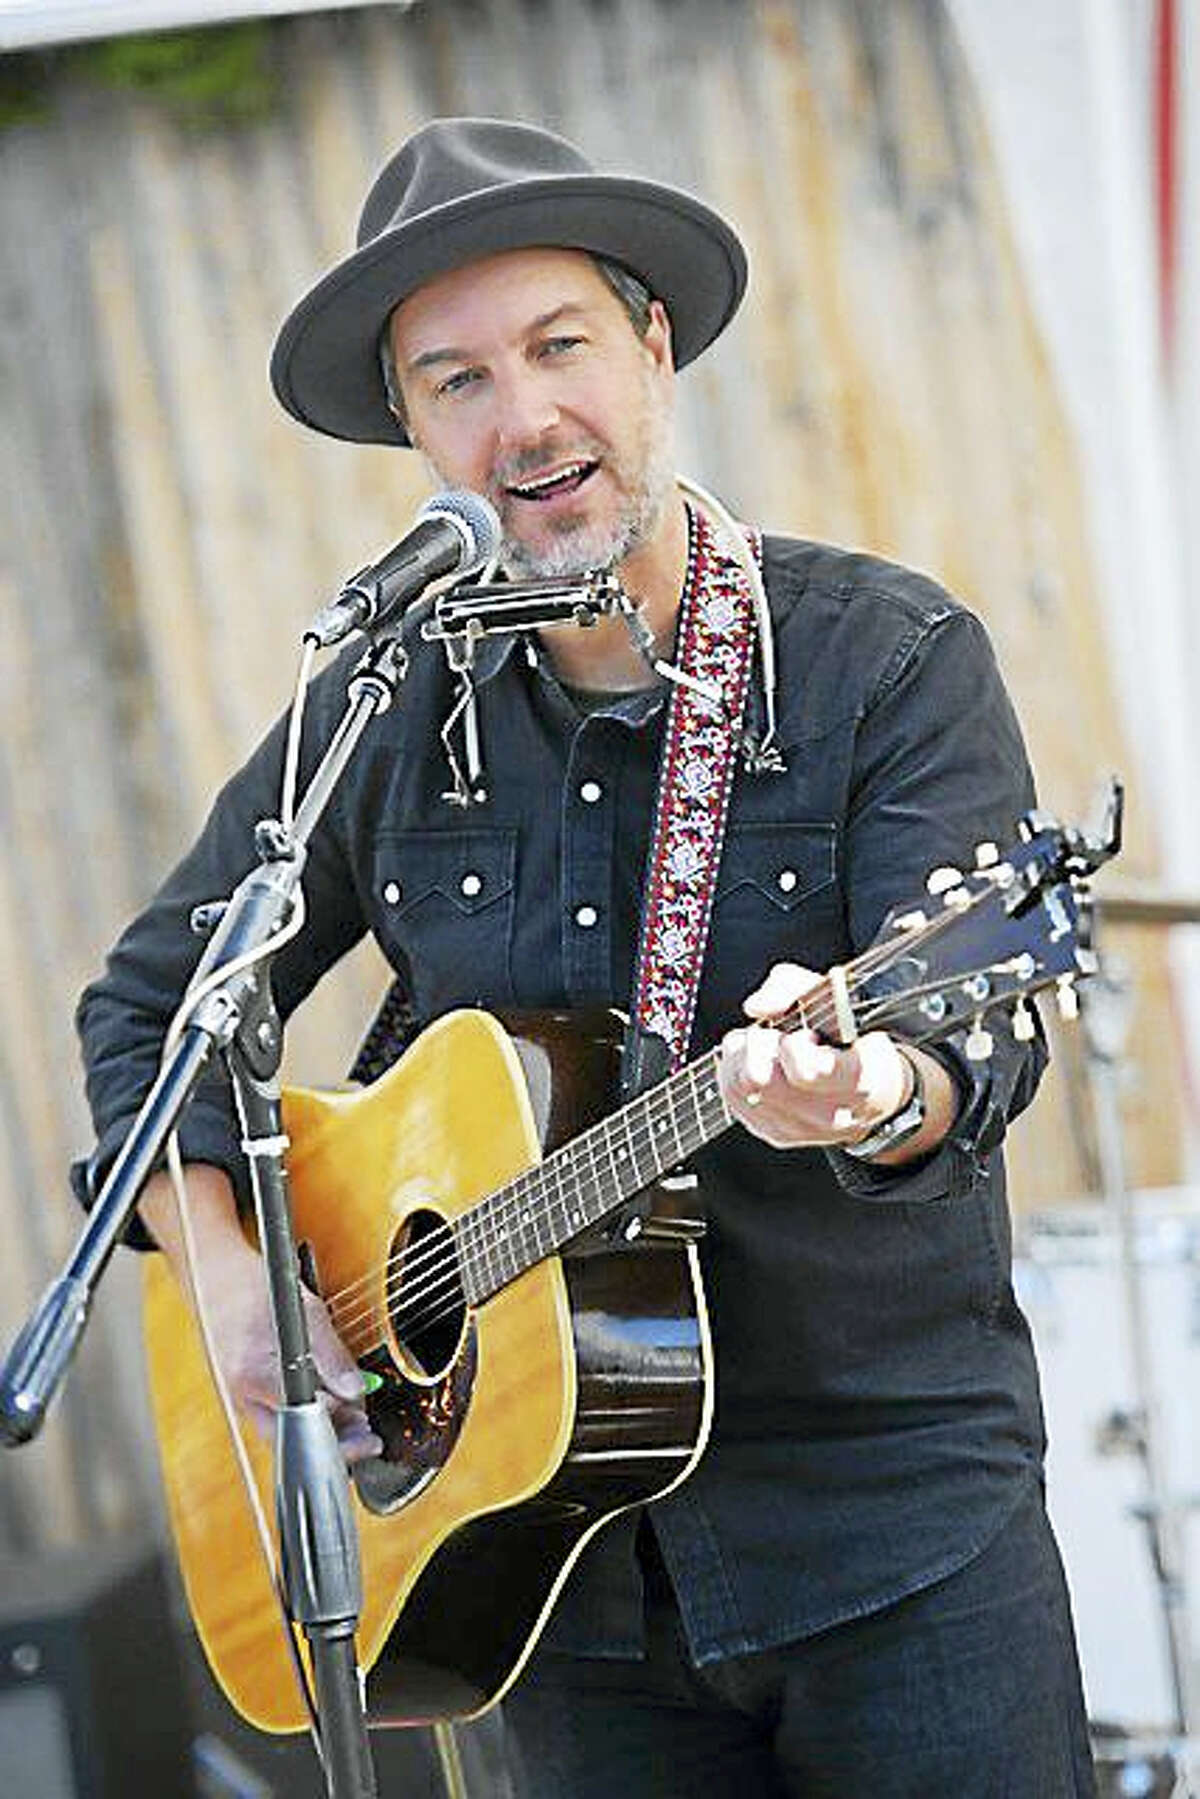 Contributed photoFolk rock musician Brian Dolzani will perform Friday night at Coe Memorial Park's Civic Center, in the first of four concerts presented by the Parks and recreation department in Torrington, along with singer-songwriter Jay Roberts. The Winter Showcase Acoustic Concert Series continues weekly until Feb. 10.